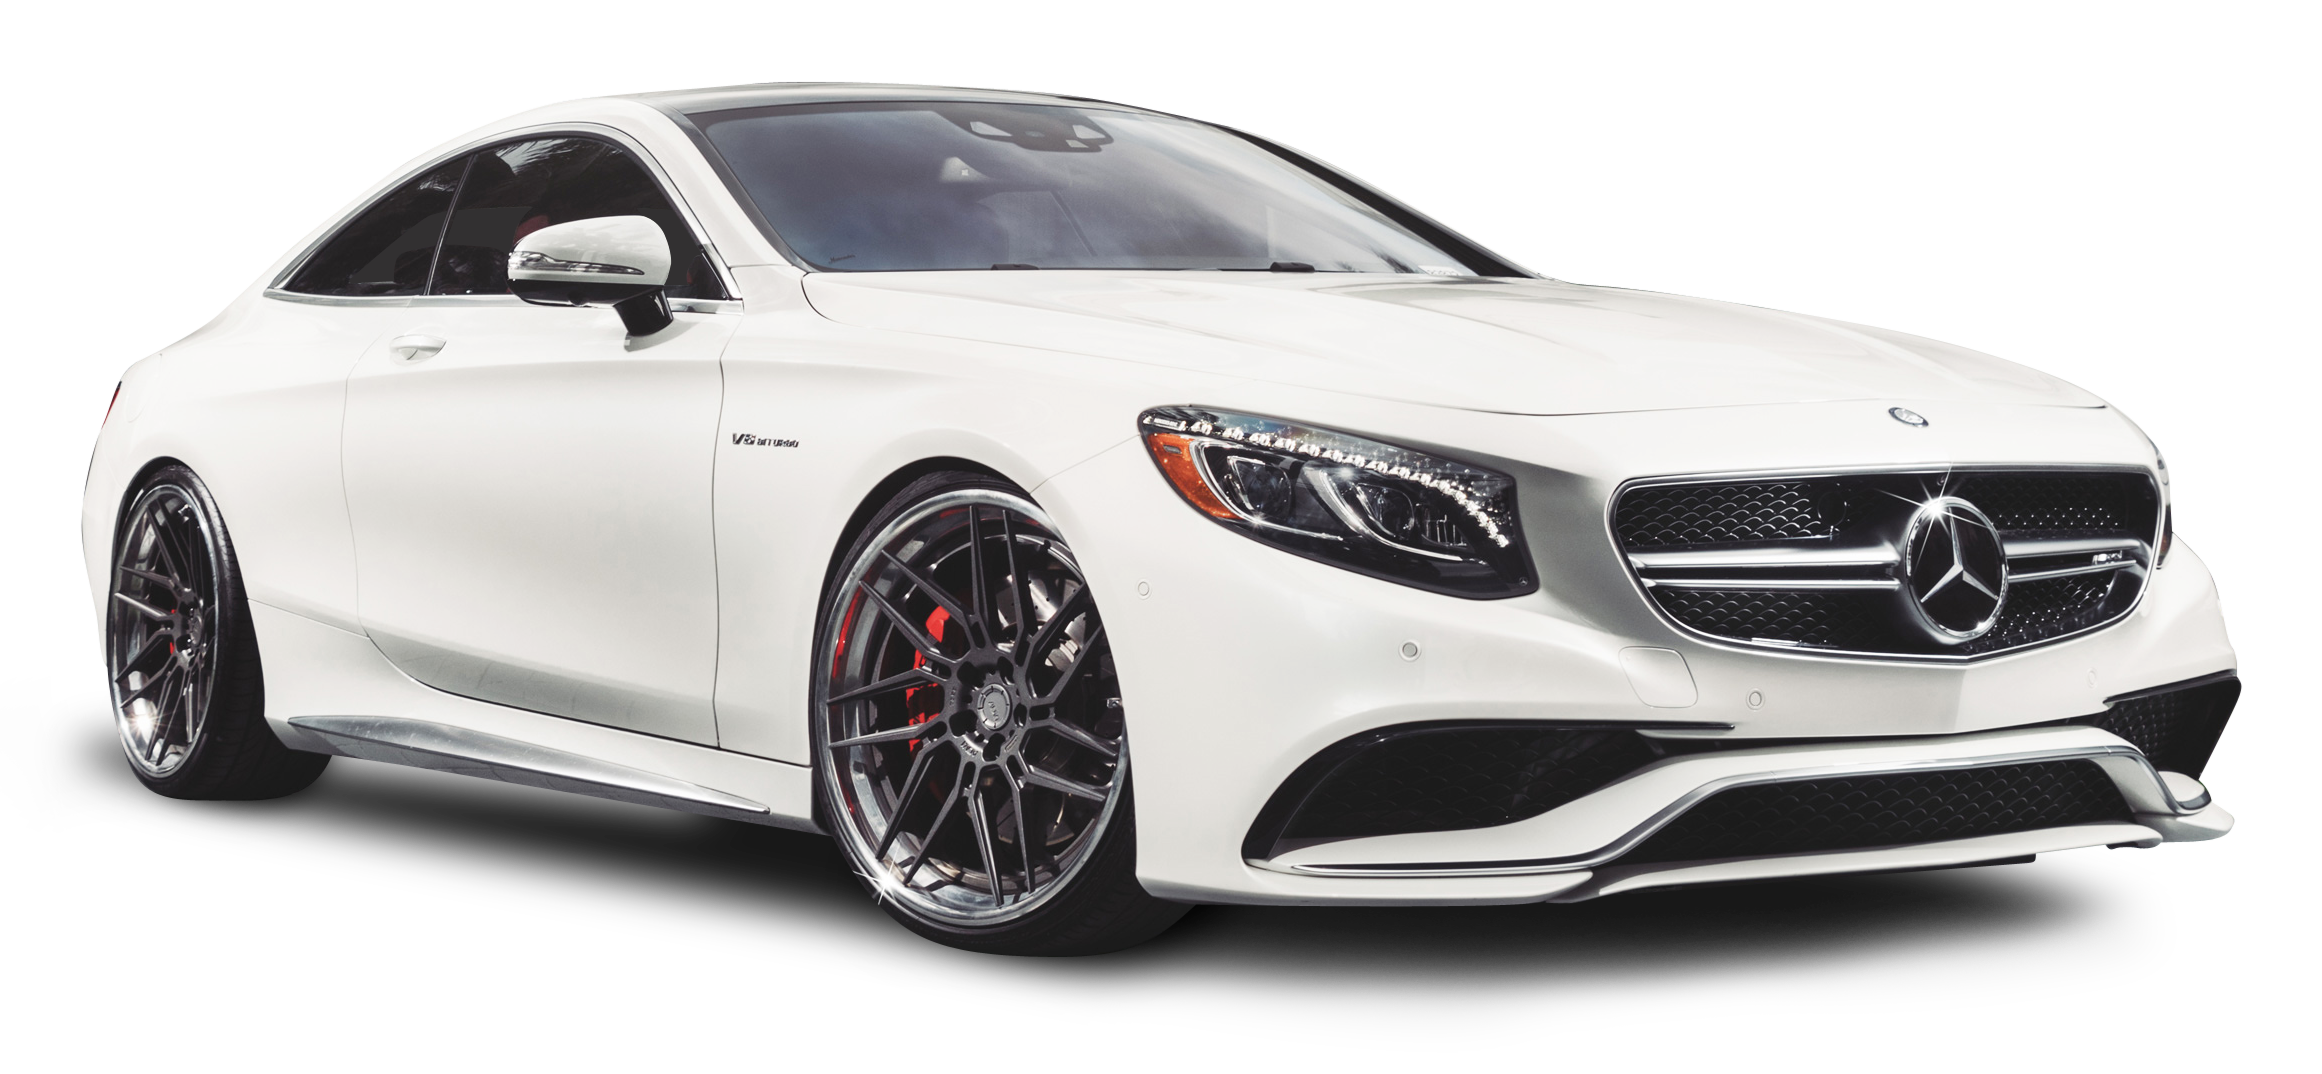 Download Mercedes Benz S63 Amg White Car Png Image For Free